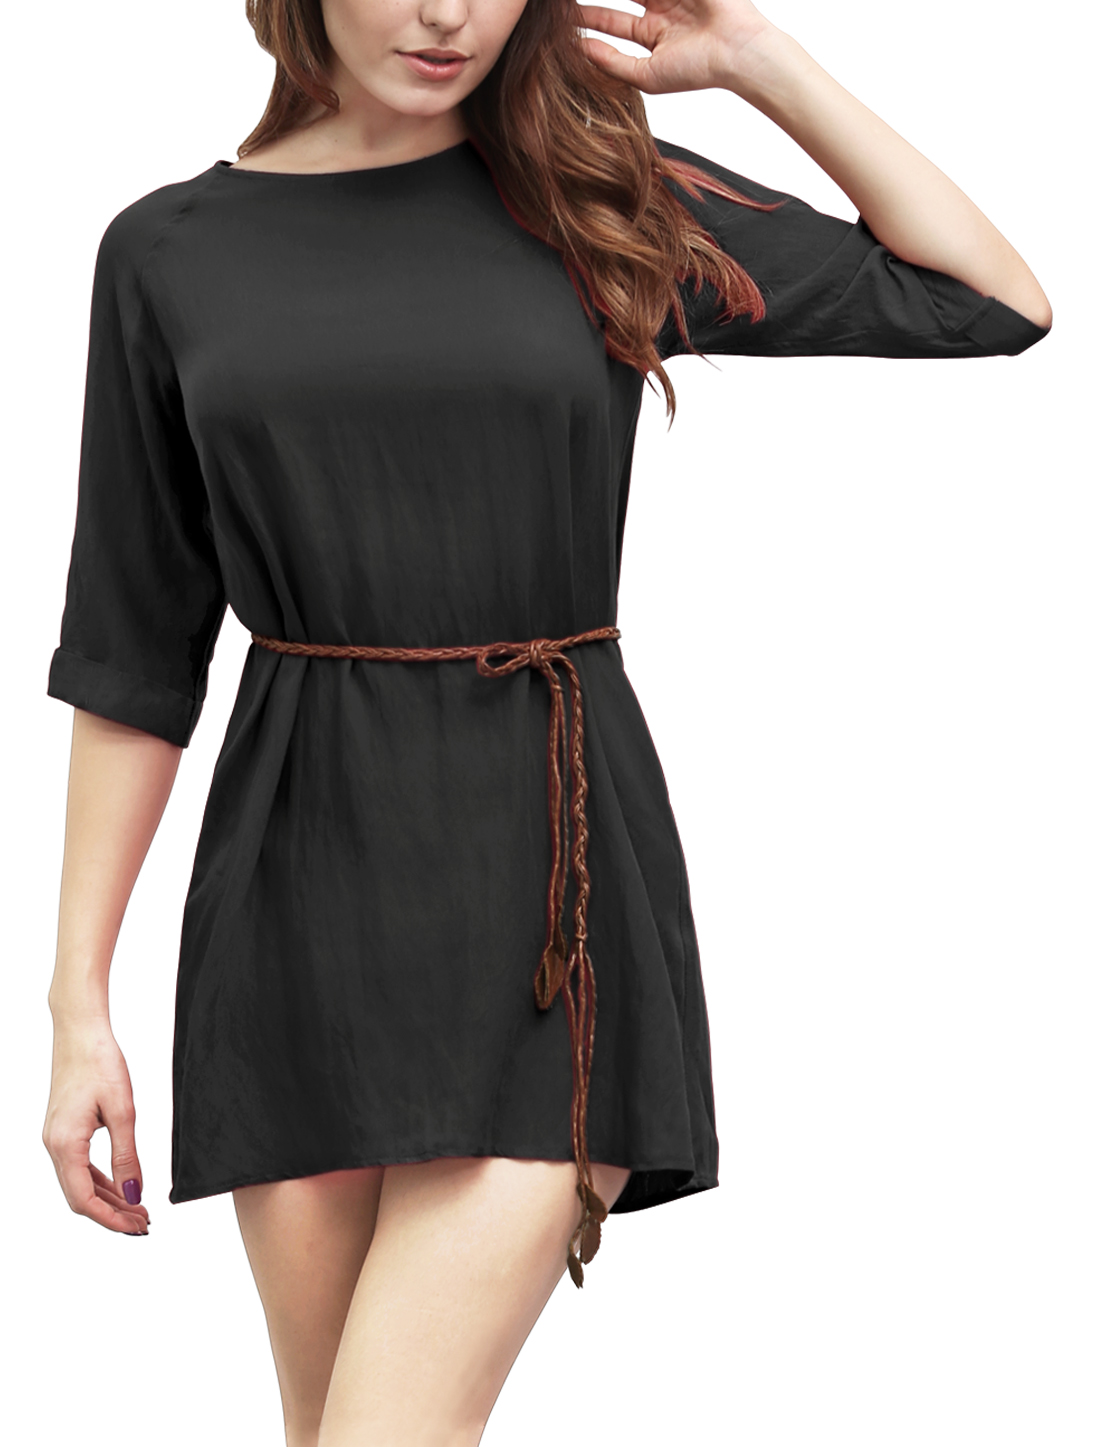 Women 3/4 Raglan Sleeves Belted Linen Mini Dress Black XL